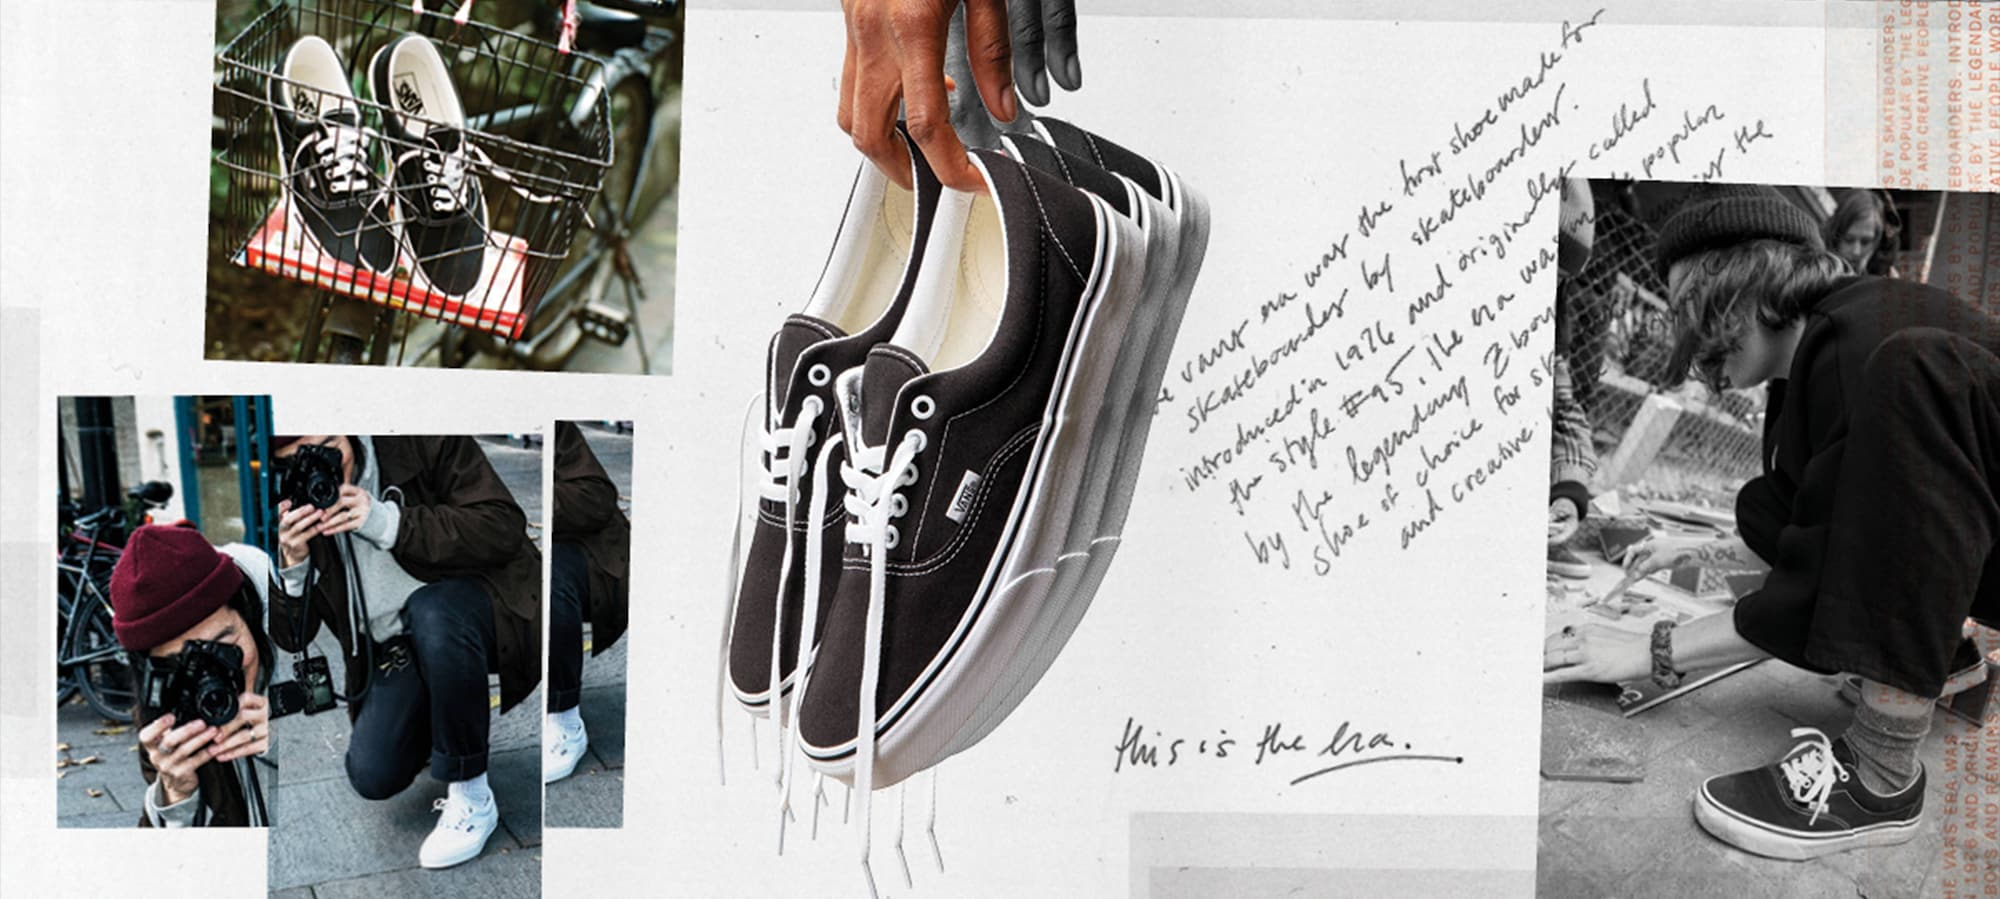 This is the Era Vans